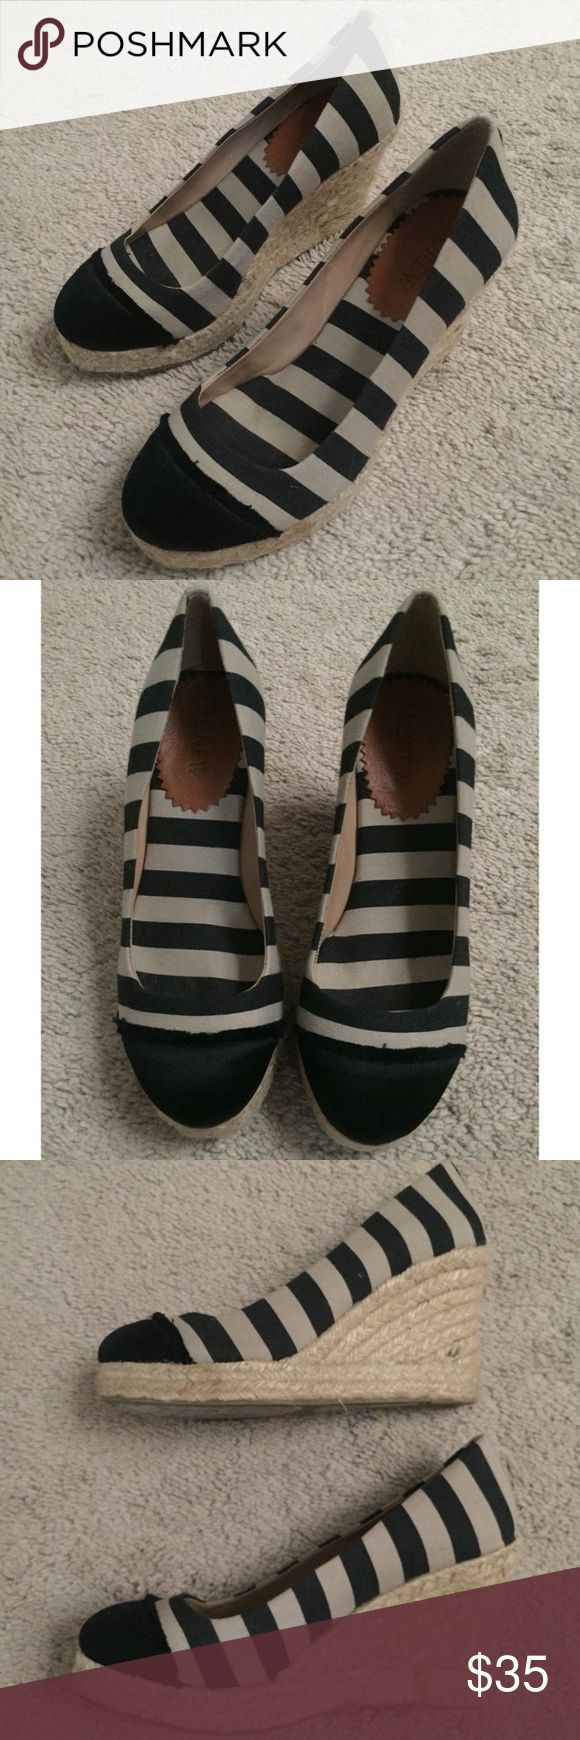 """J. Crew Seville Striped Nautical Espadrille Wedges J. Crew Seville Navy Striped Nautical Espadrille Wedges   • Size: 5  • Color: Navy and Beige  • Canvas Lining  • Leather upper  • 3.5"""" heel (High), Medium width  • Slip on style/ fastening  • Striped pattern/ Nautical theme  • In excellent pre-owned condition. Small black stain on the right platform only. Please refer to pics for more detailed condition. Does not come in box  No trades.   Bundle and save.   Comment for questions. J. Crew…"""